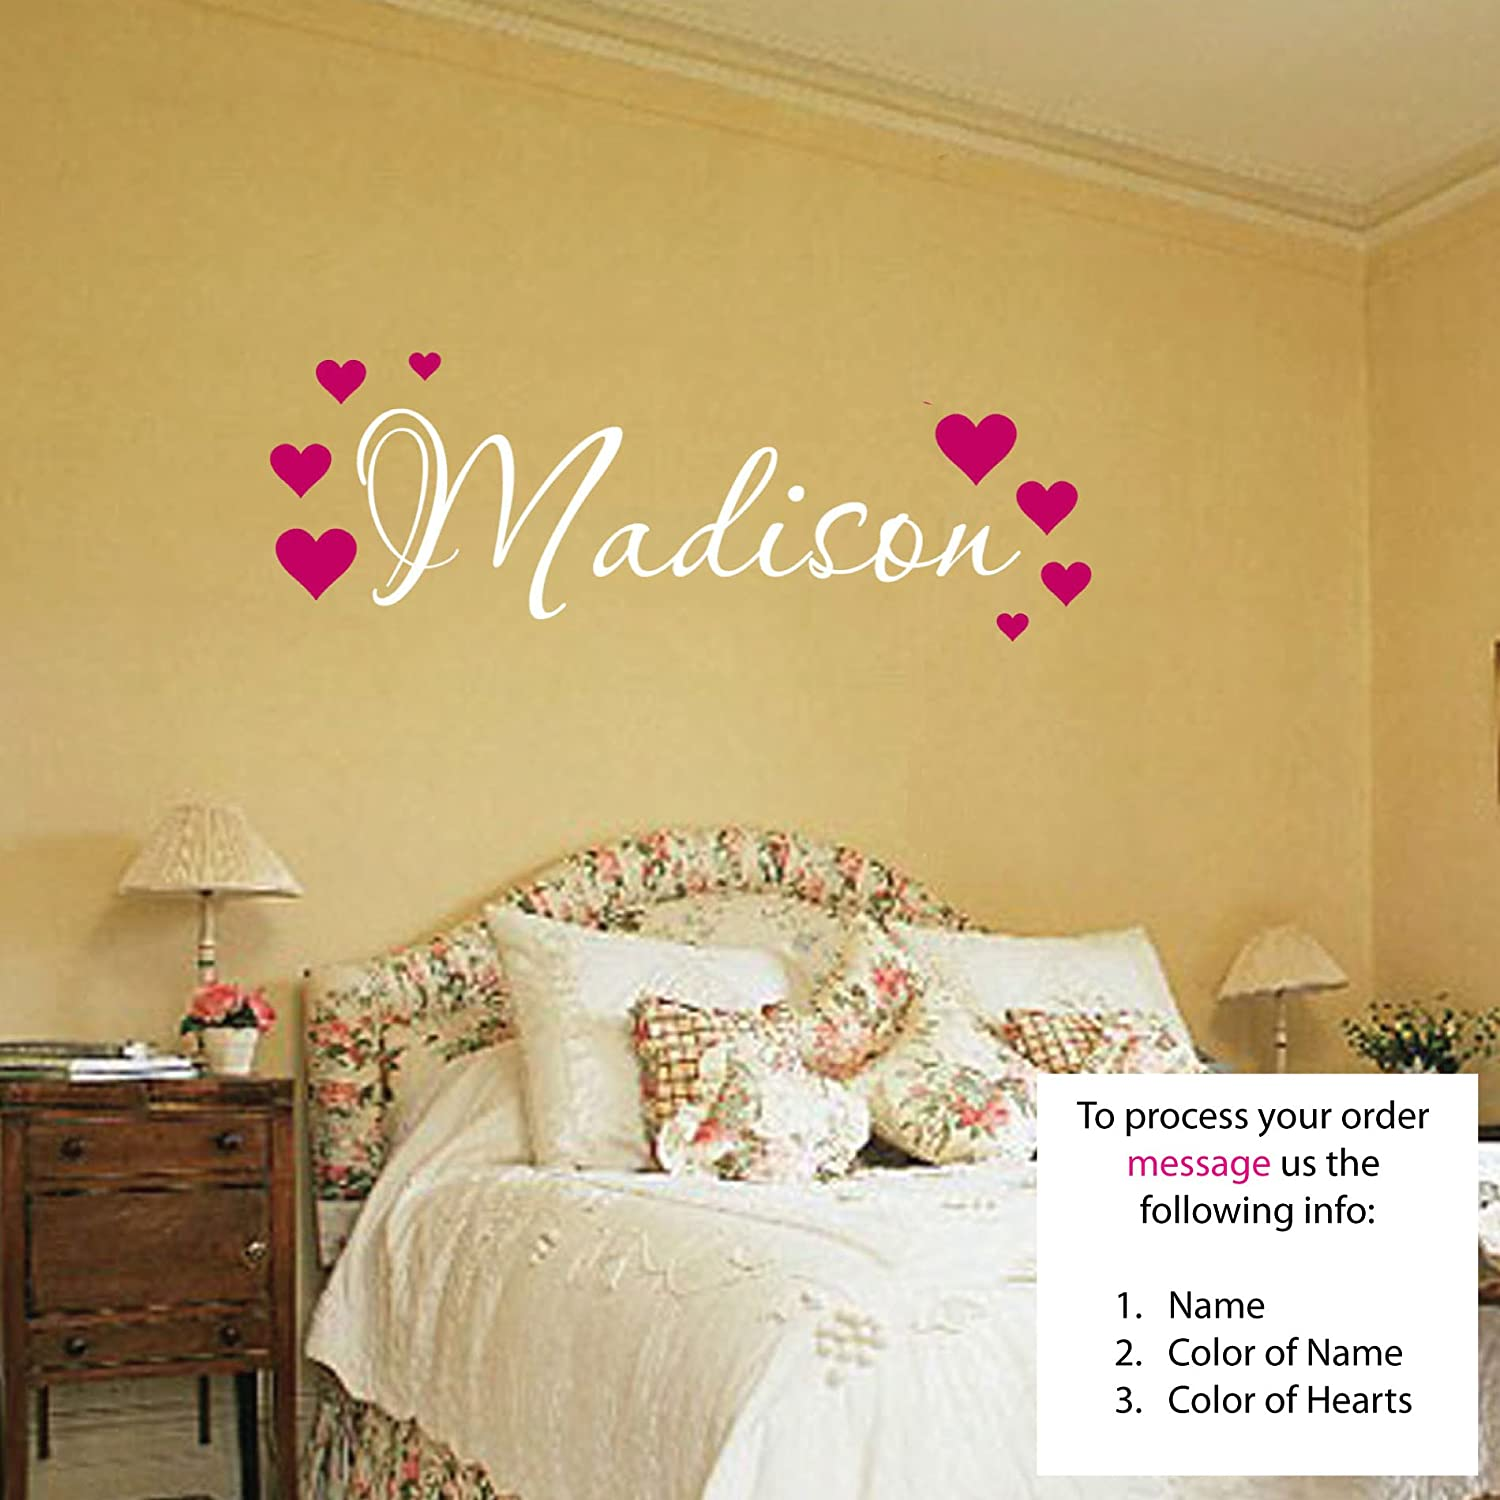 Amazon.com: Madison Wall Decal Childrens Personalized Name   Childrens Wall  Art   Boys Name Wall Decal   Monogram: Home U0026 Kitchen Part 98